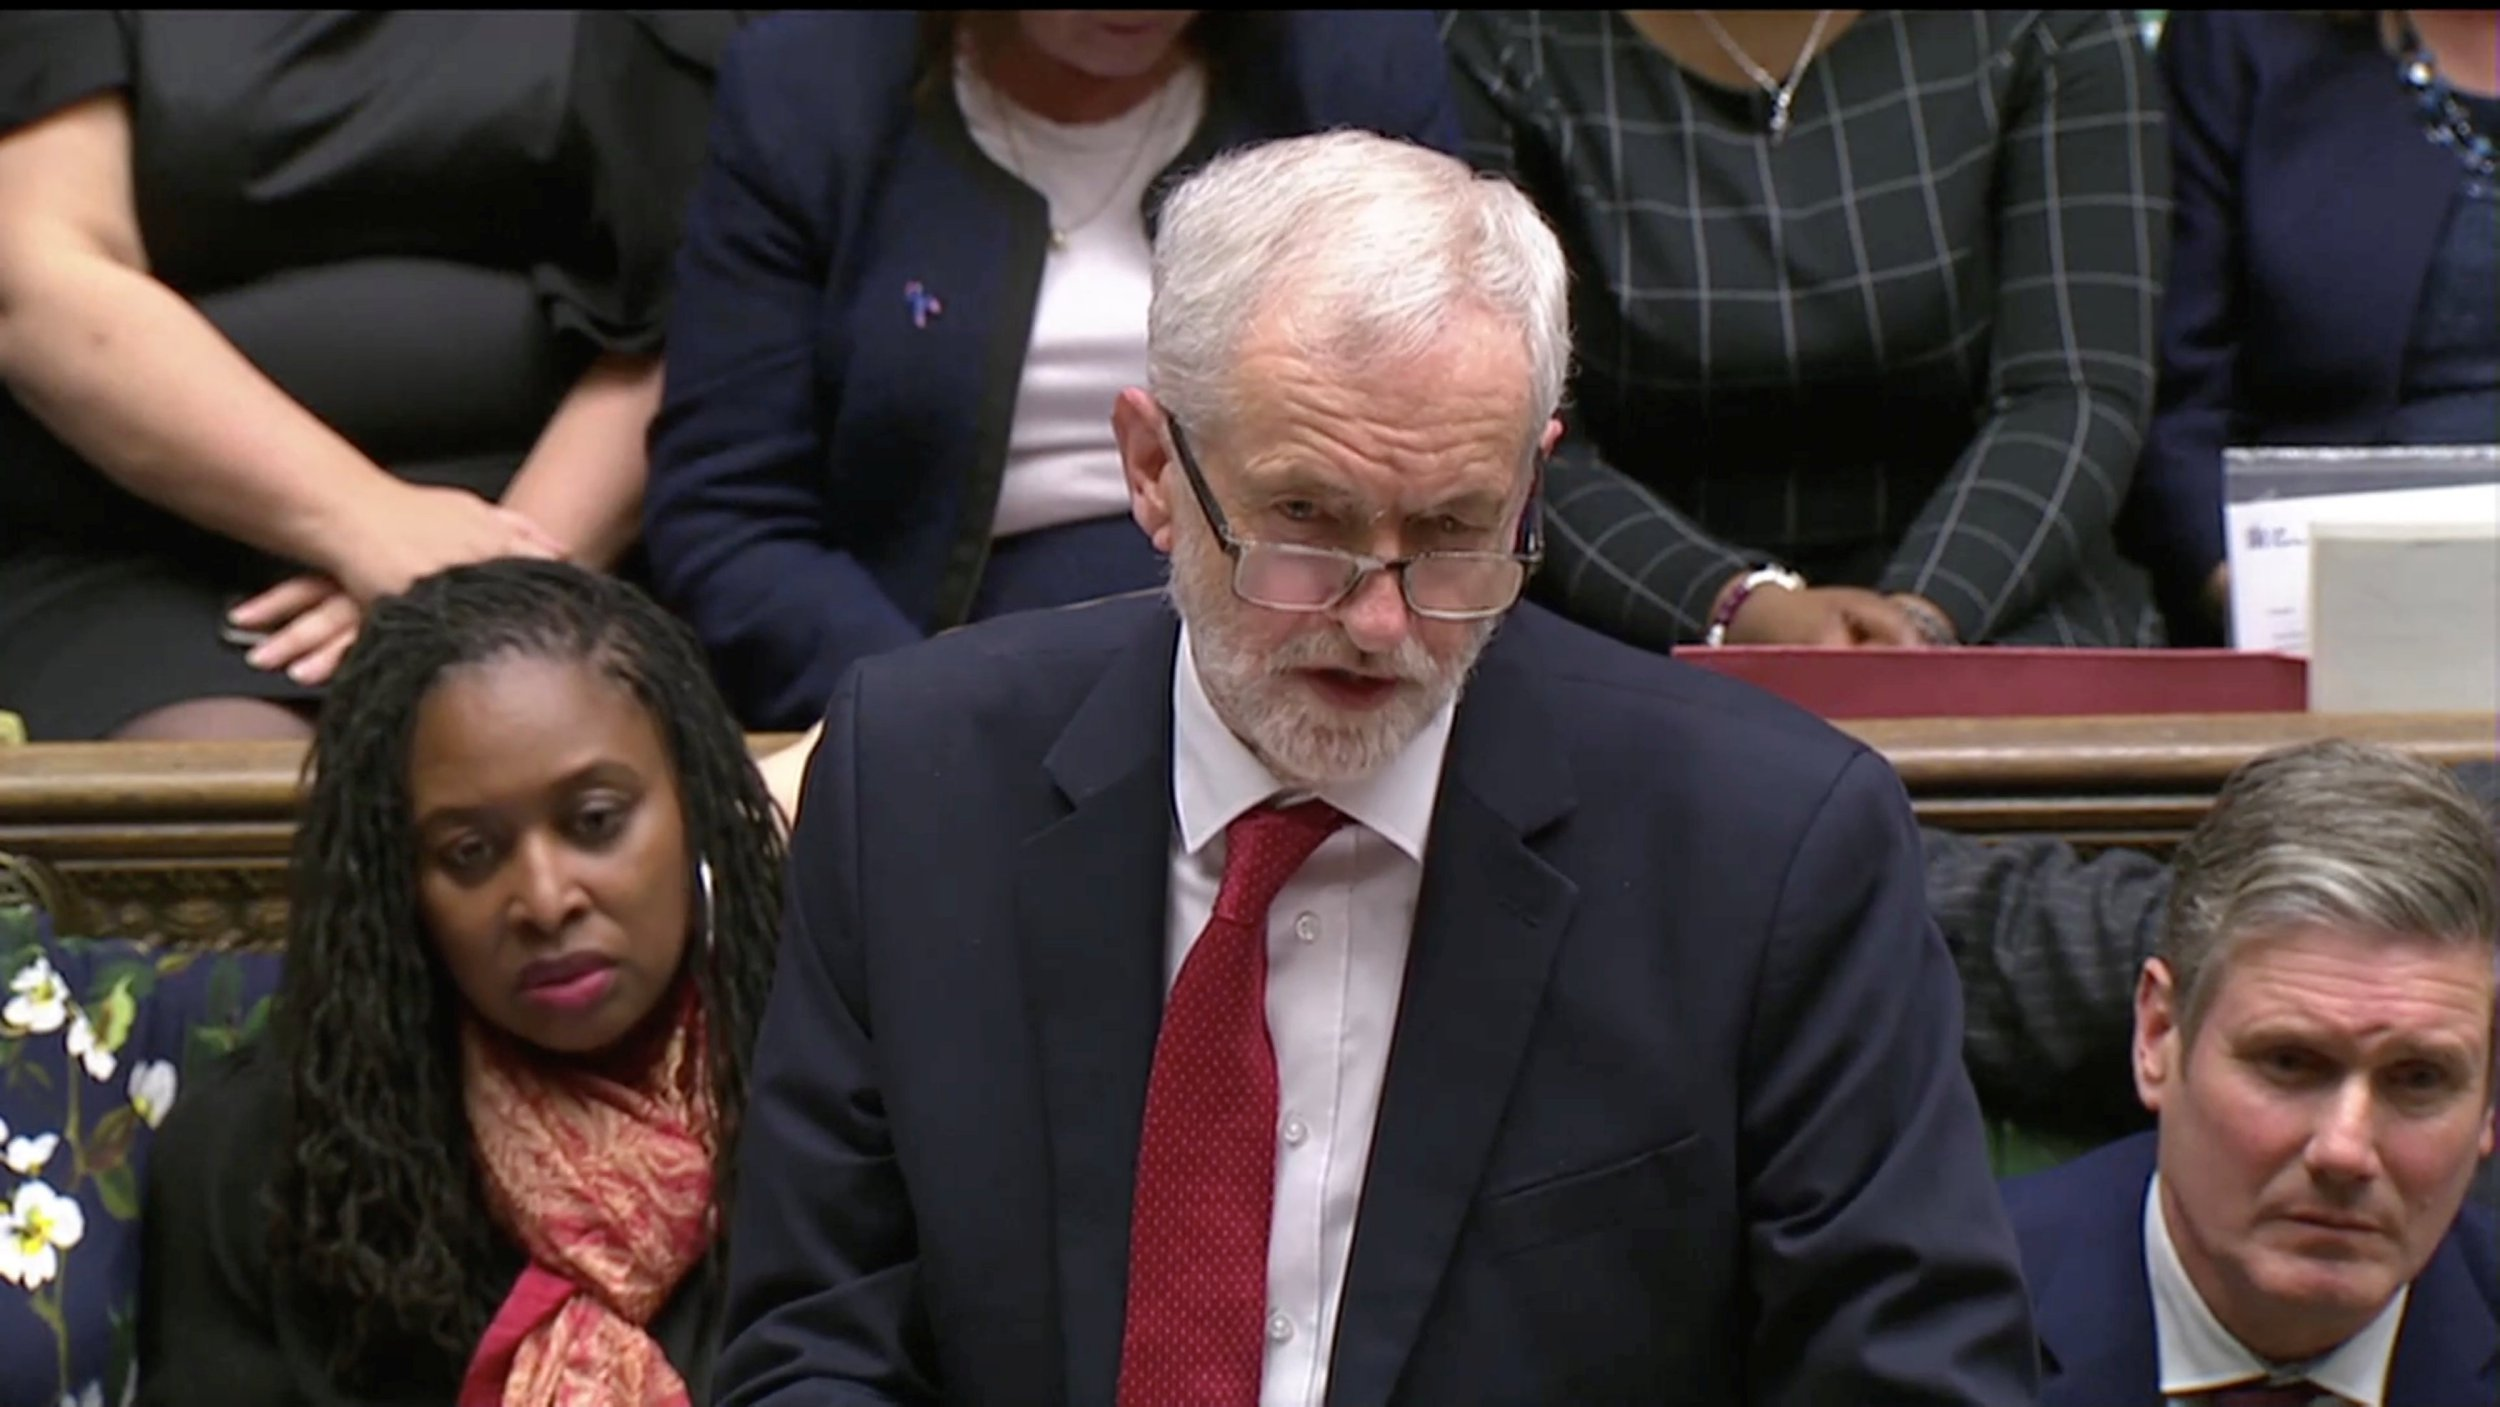 Labour party leader Jeremy Corbyn addresses Parliament after the vote on May's Brexit deal, in London, Britain, January 15, 2019 in this screengrab taken from video. Reuters TV via REUTERS